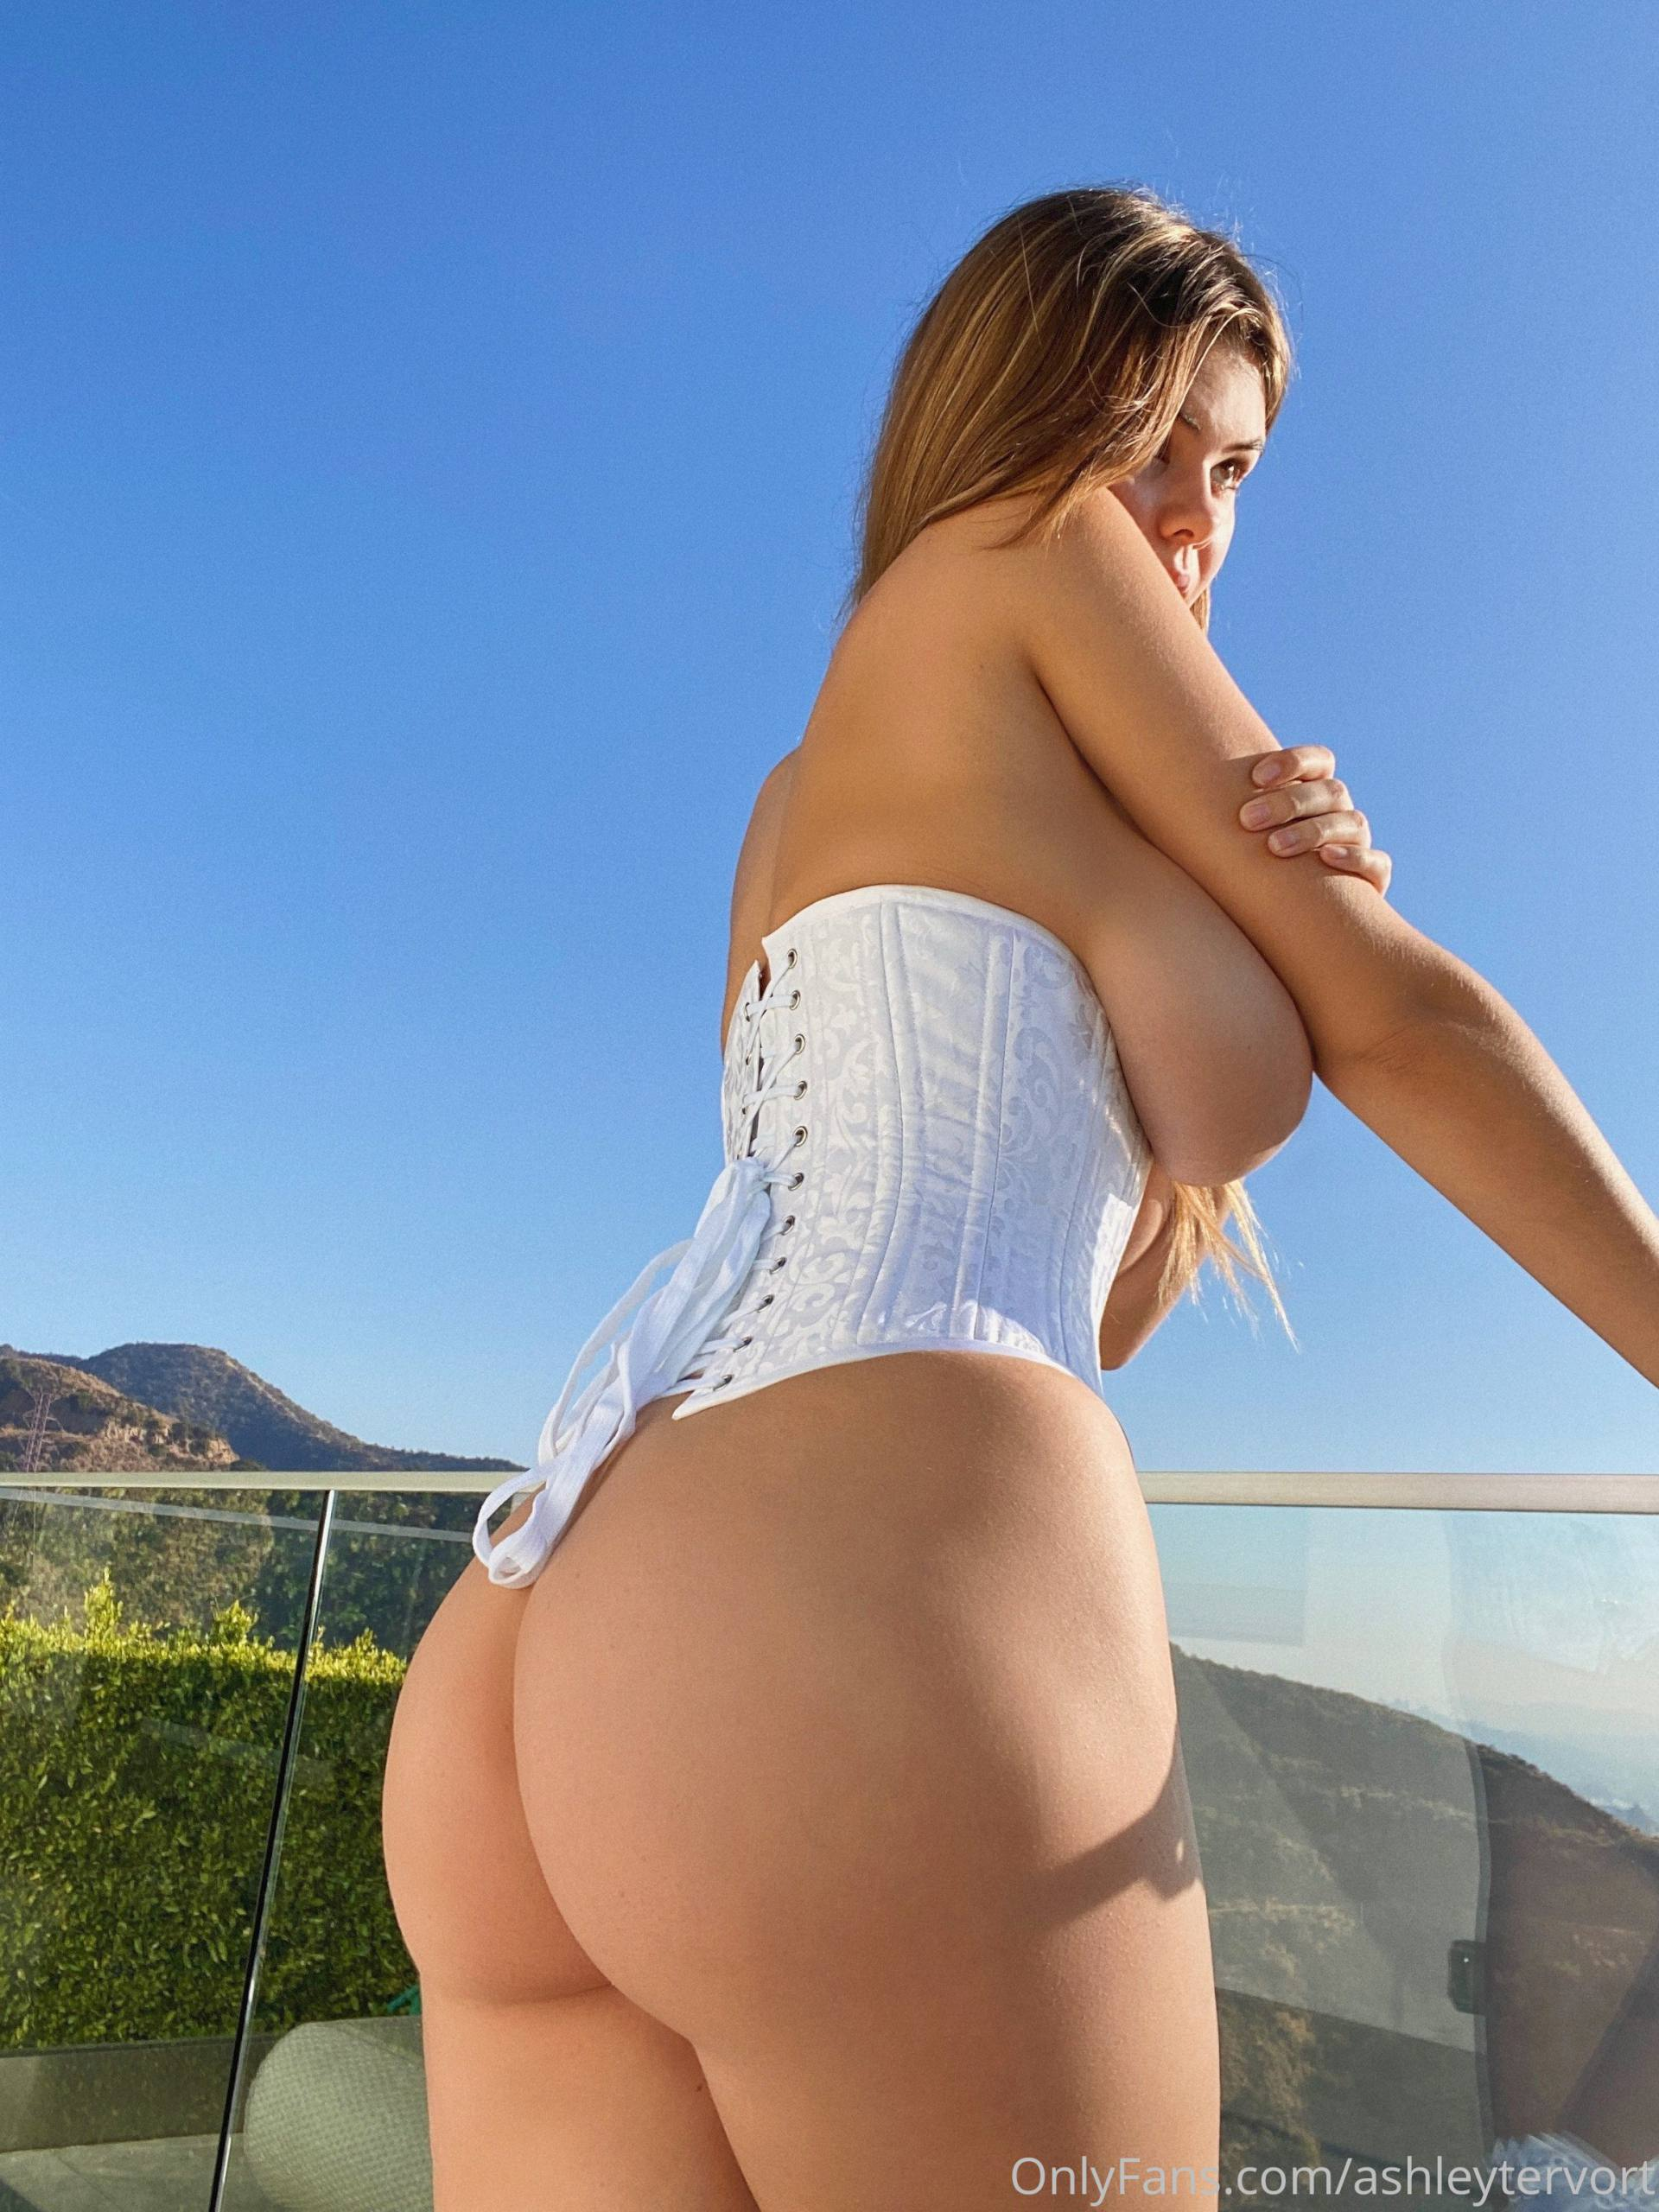 Ashley Tervort Naked Perfect Body